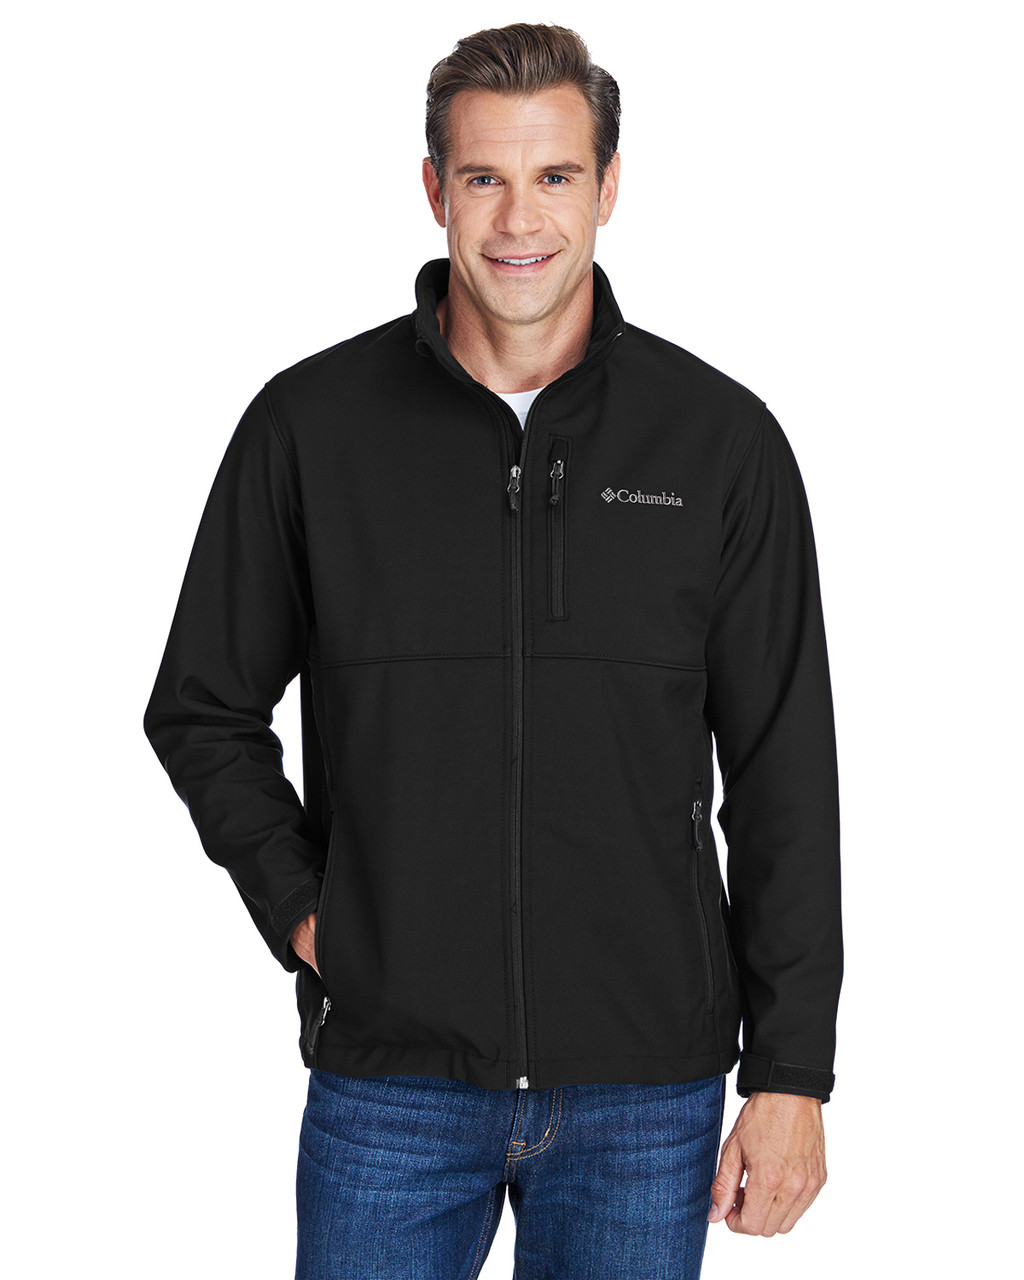 Black - C6044 Columbia Men's Ascender™ Soft Shell Jacket | BlankClothing.ca